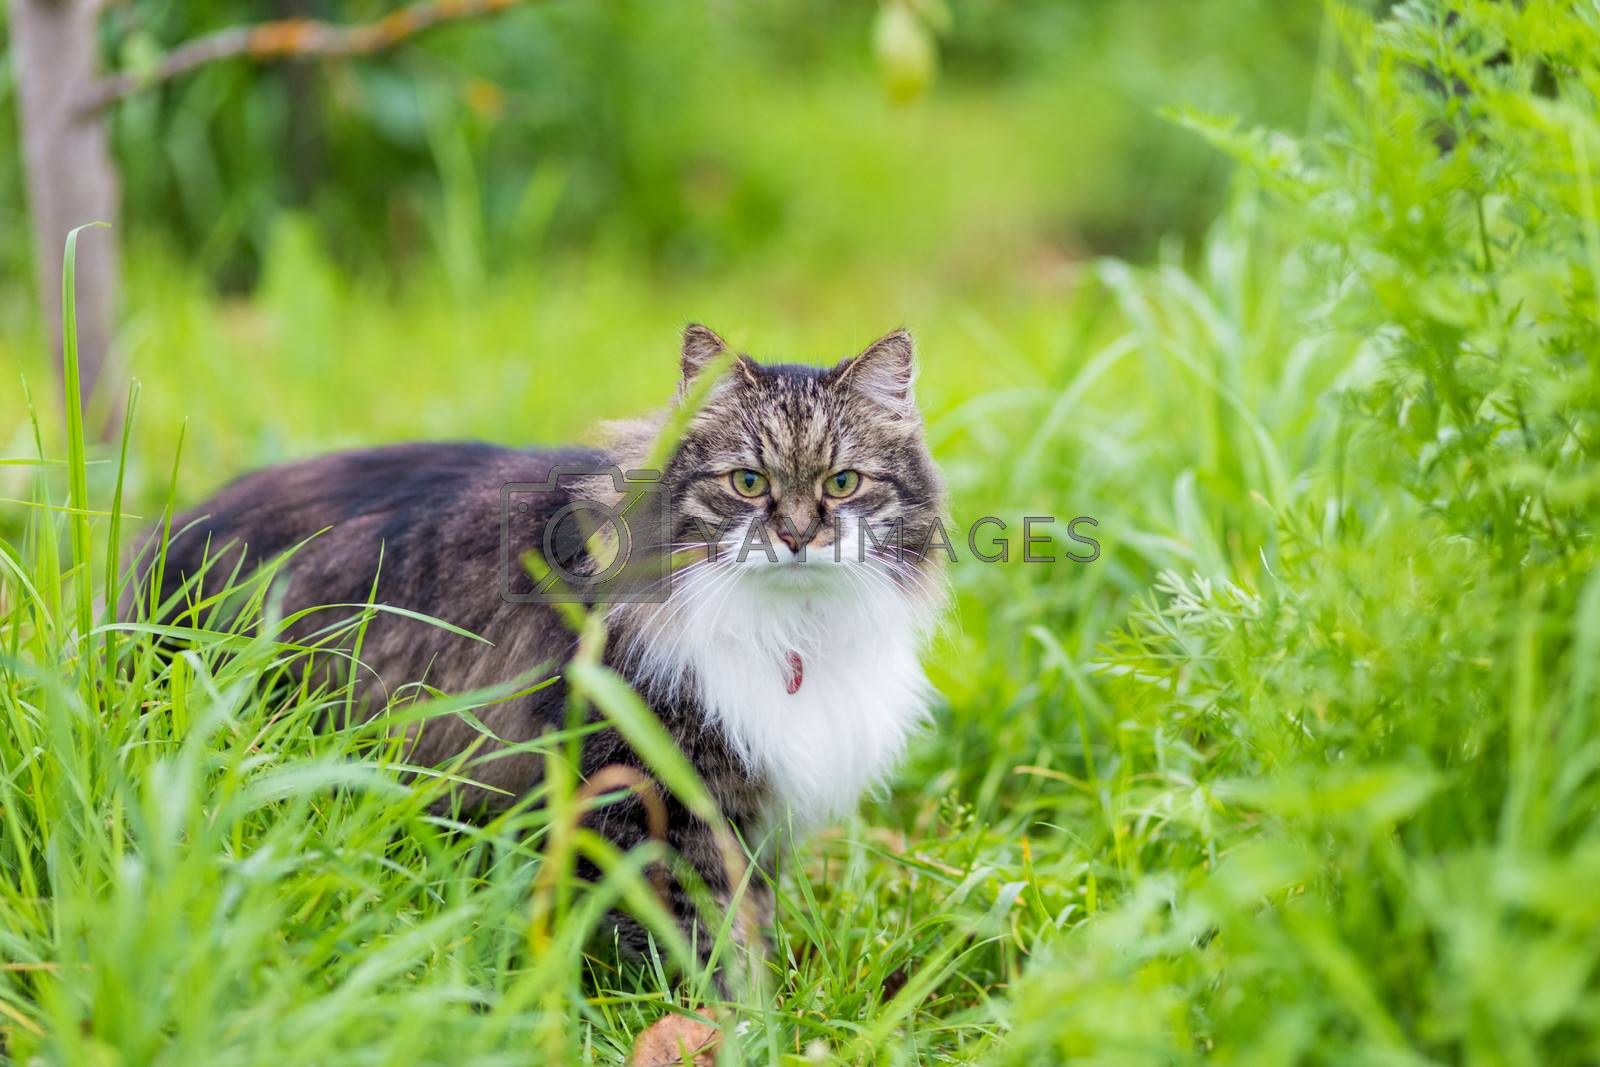 A fluffy gray cat with a luxurious white breast sits in the grass and looking at the camera